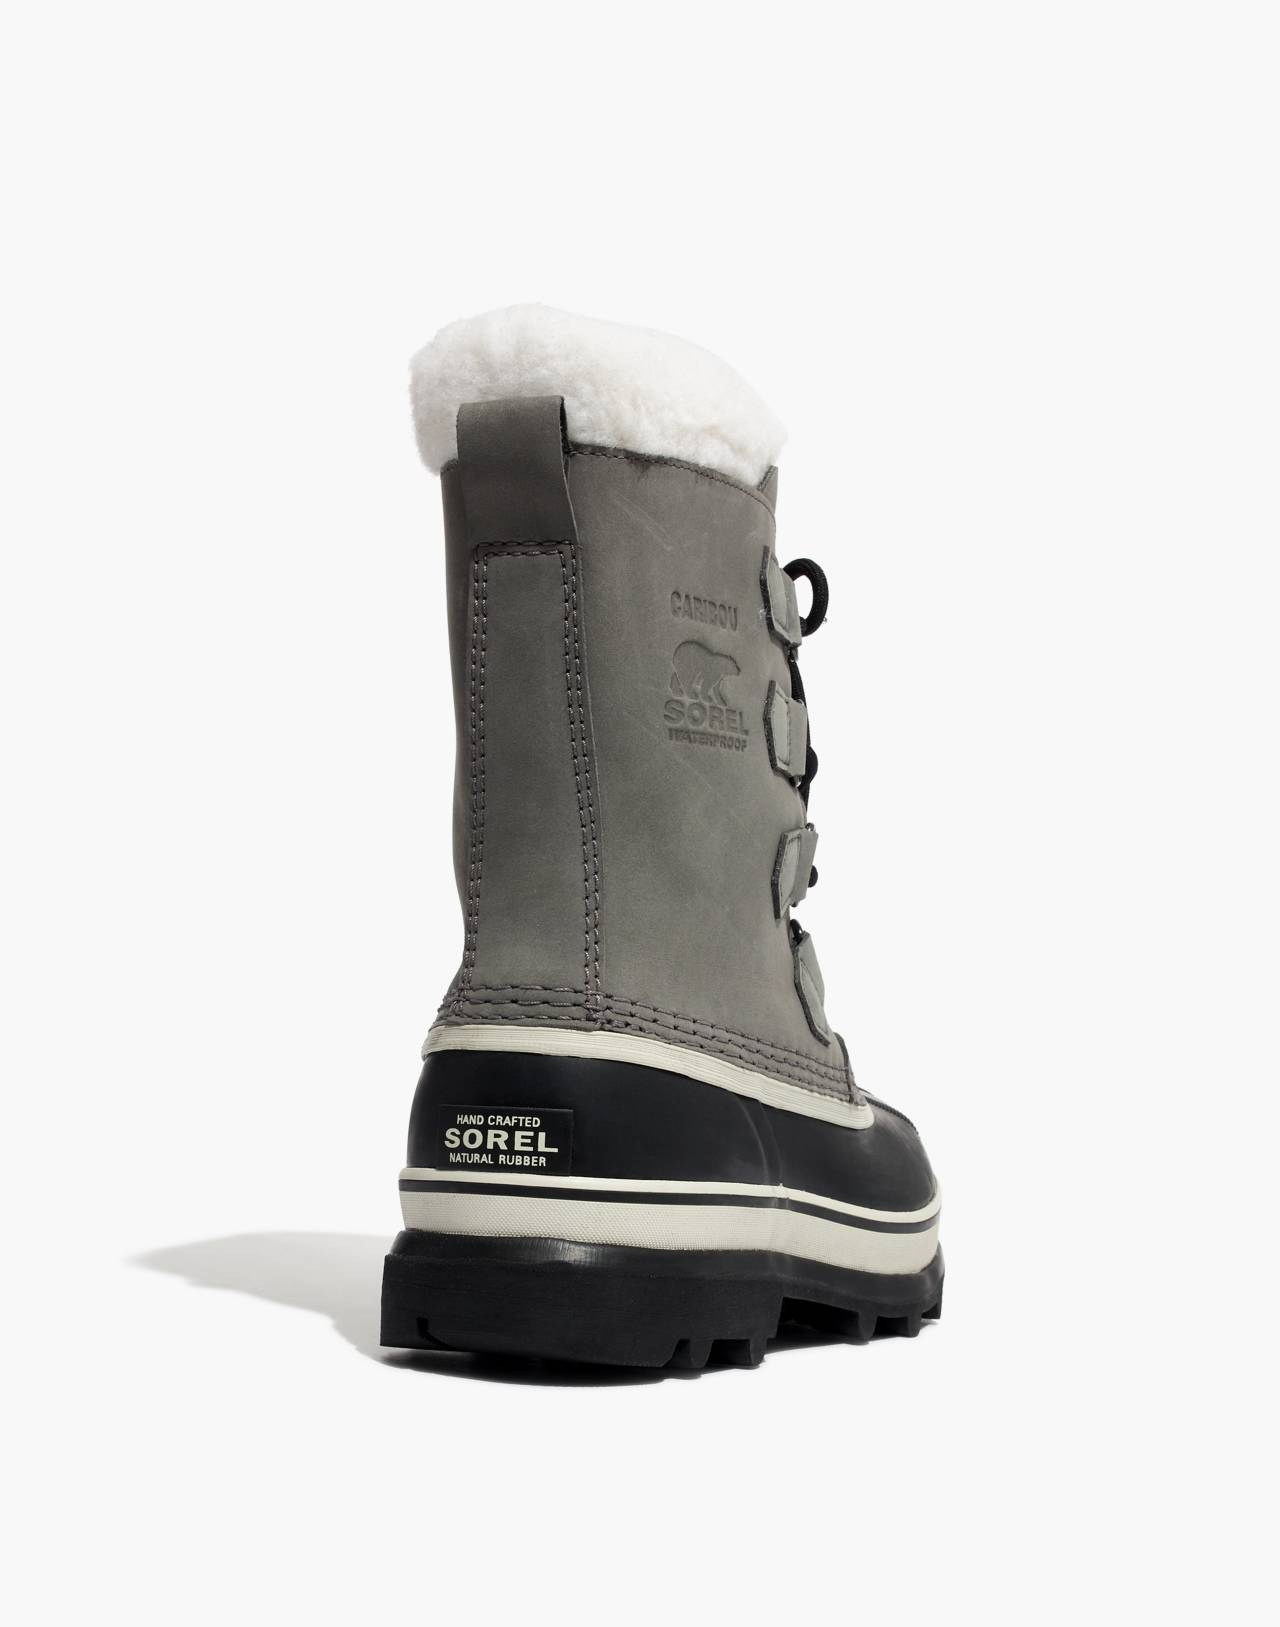 Sorel® Caribou™ Boots in shale stone image 4